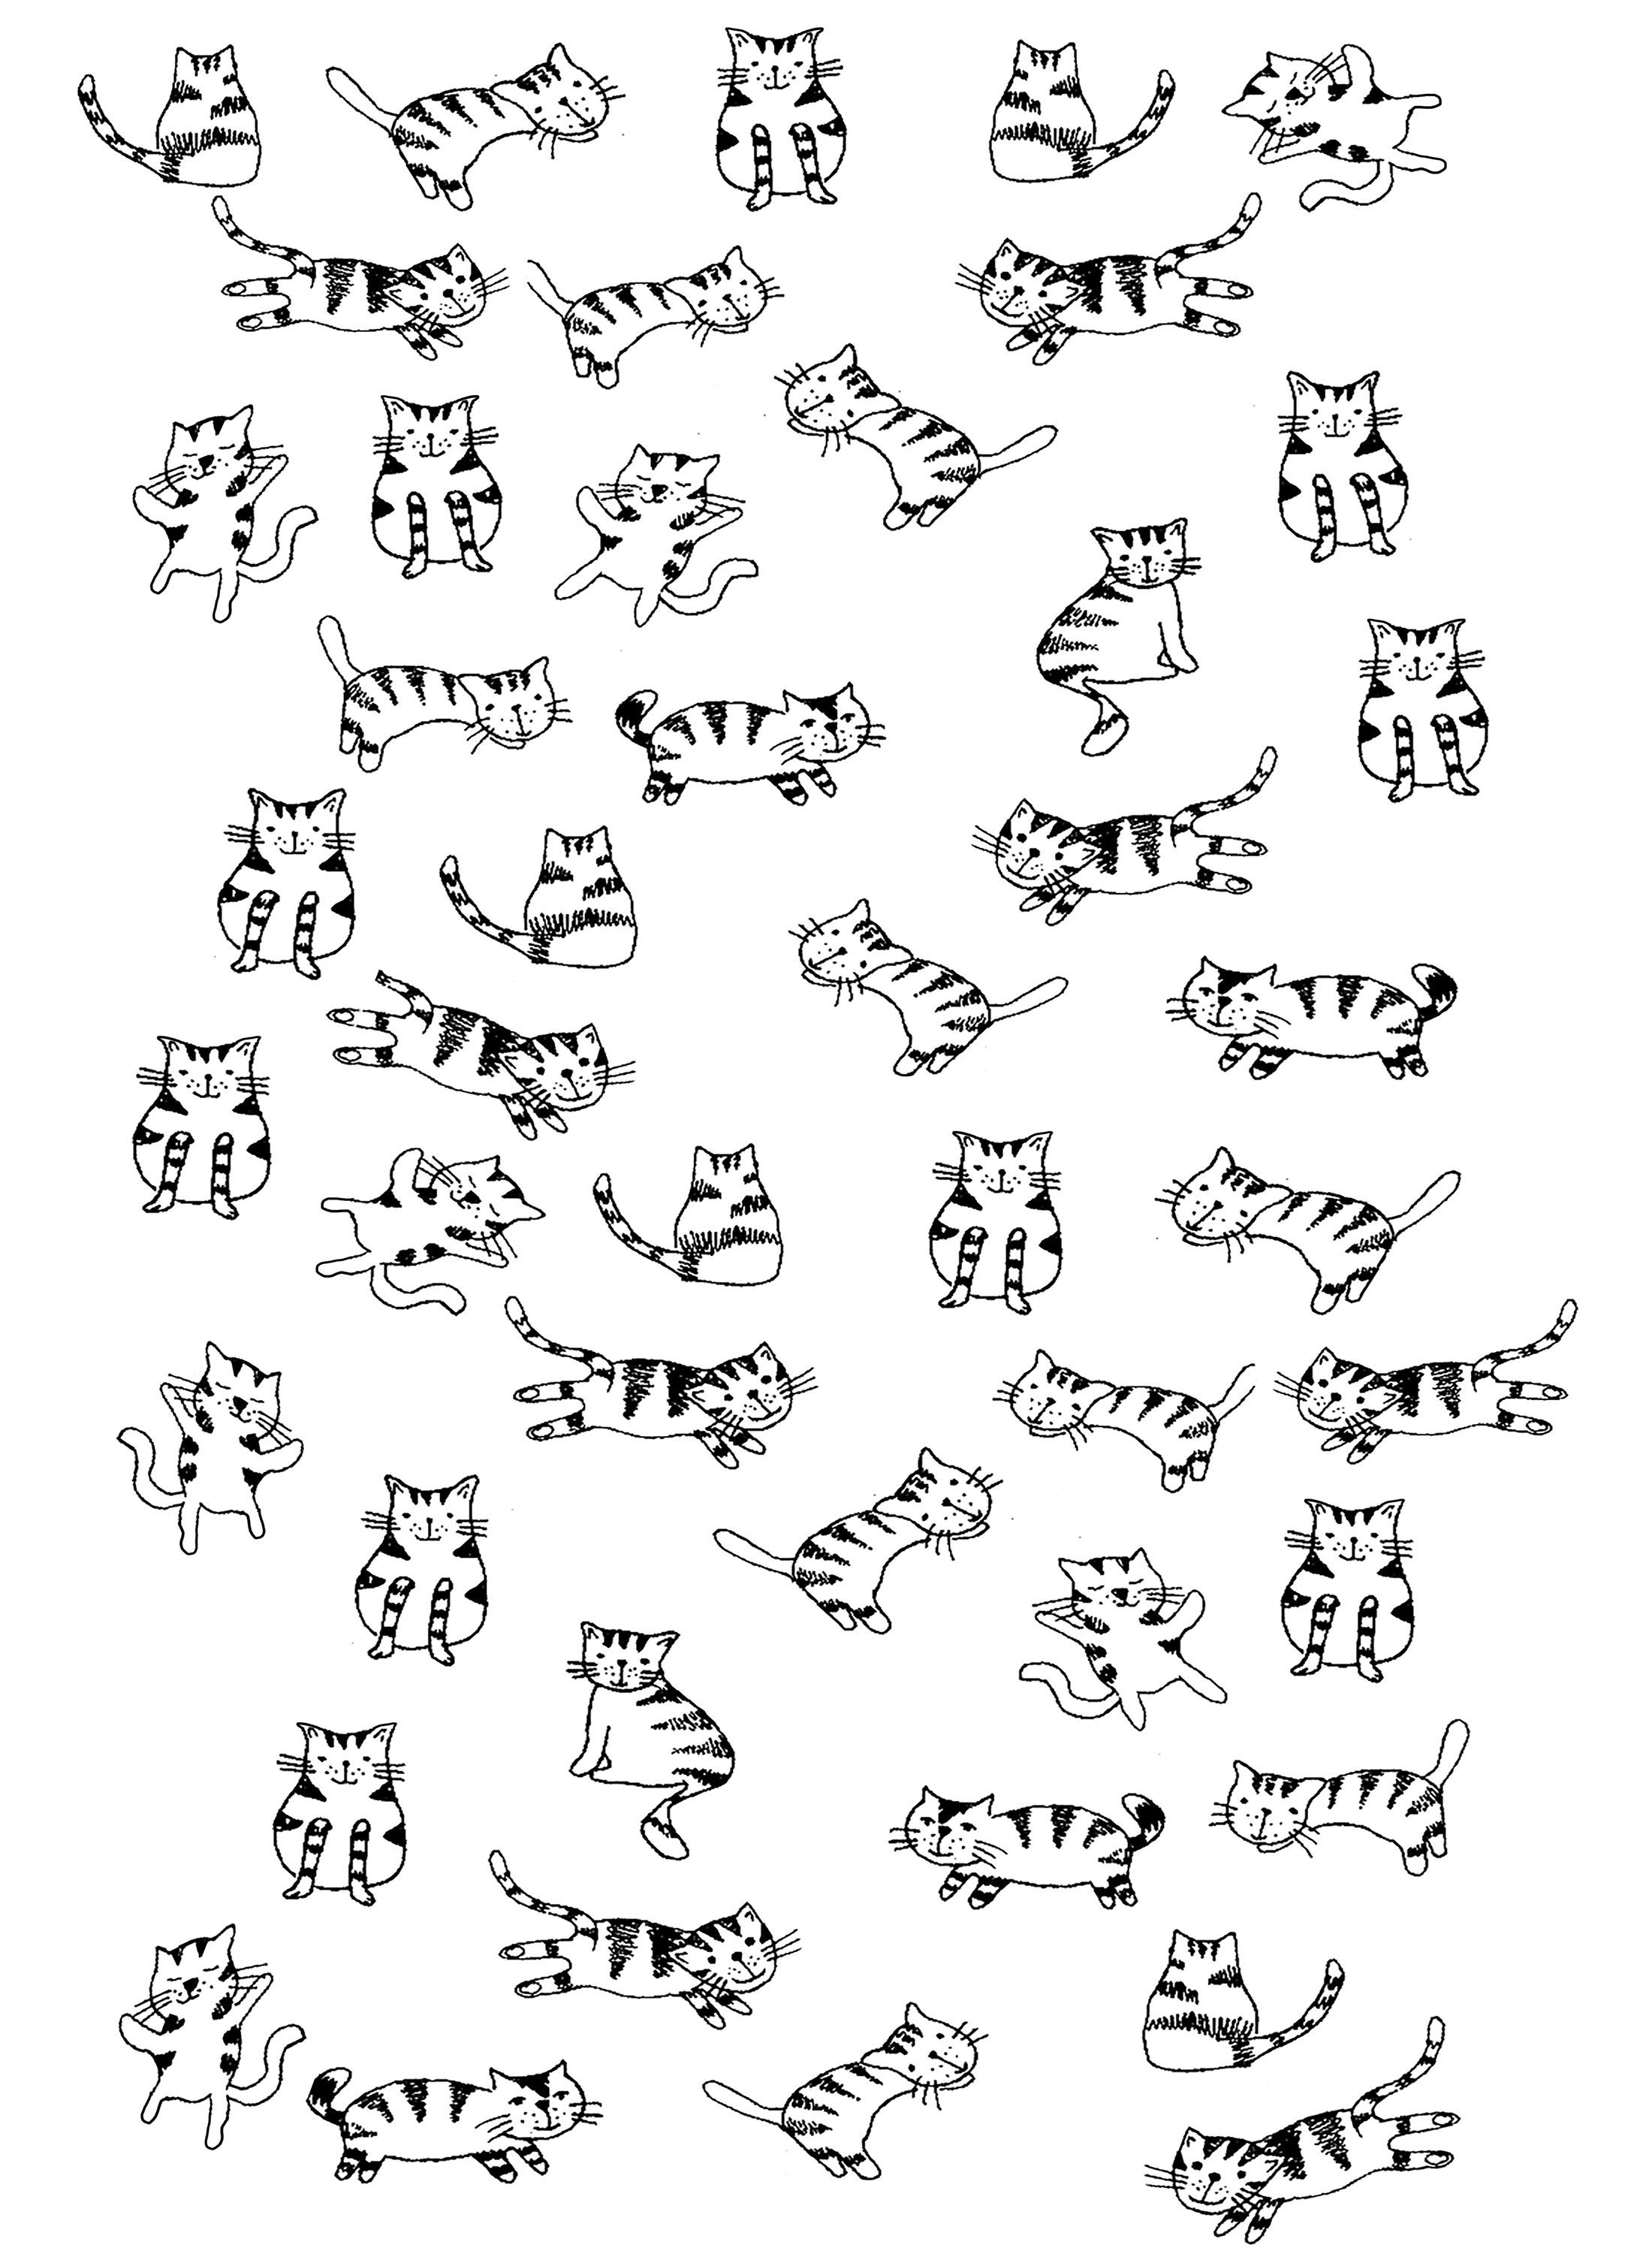 Simple Cat coloring page : Drawing full of little cats